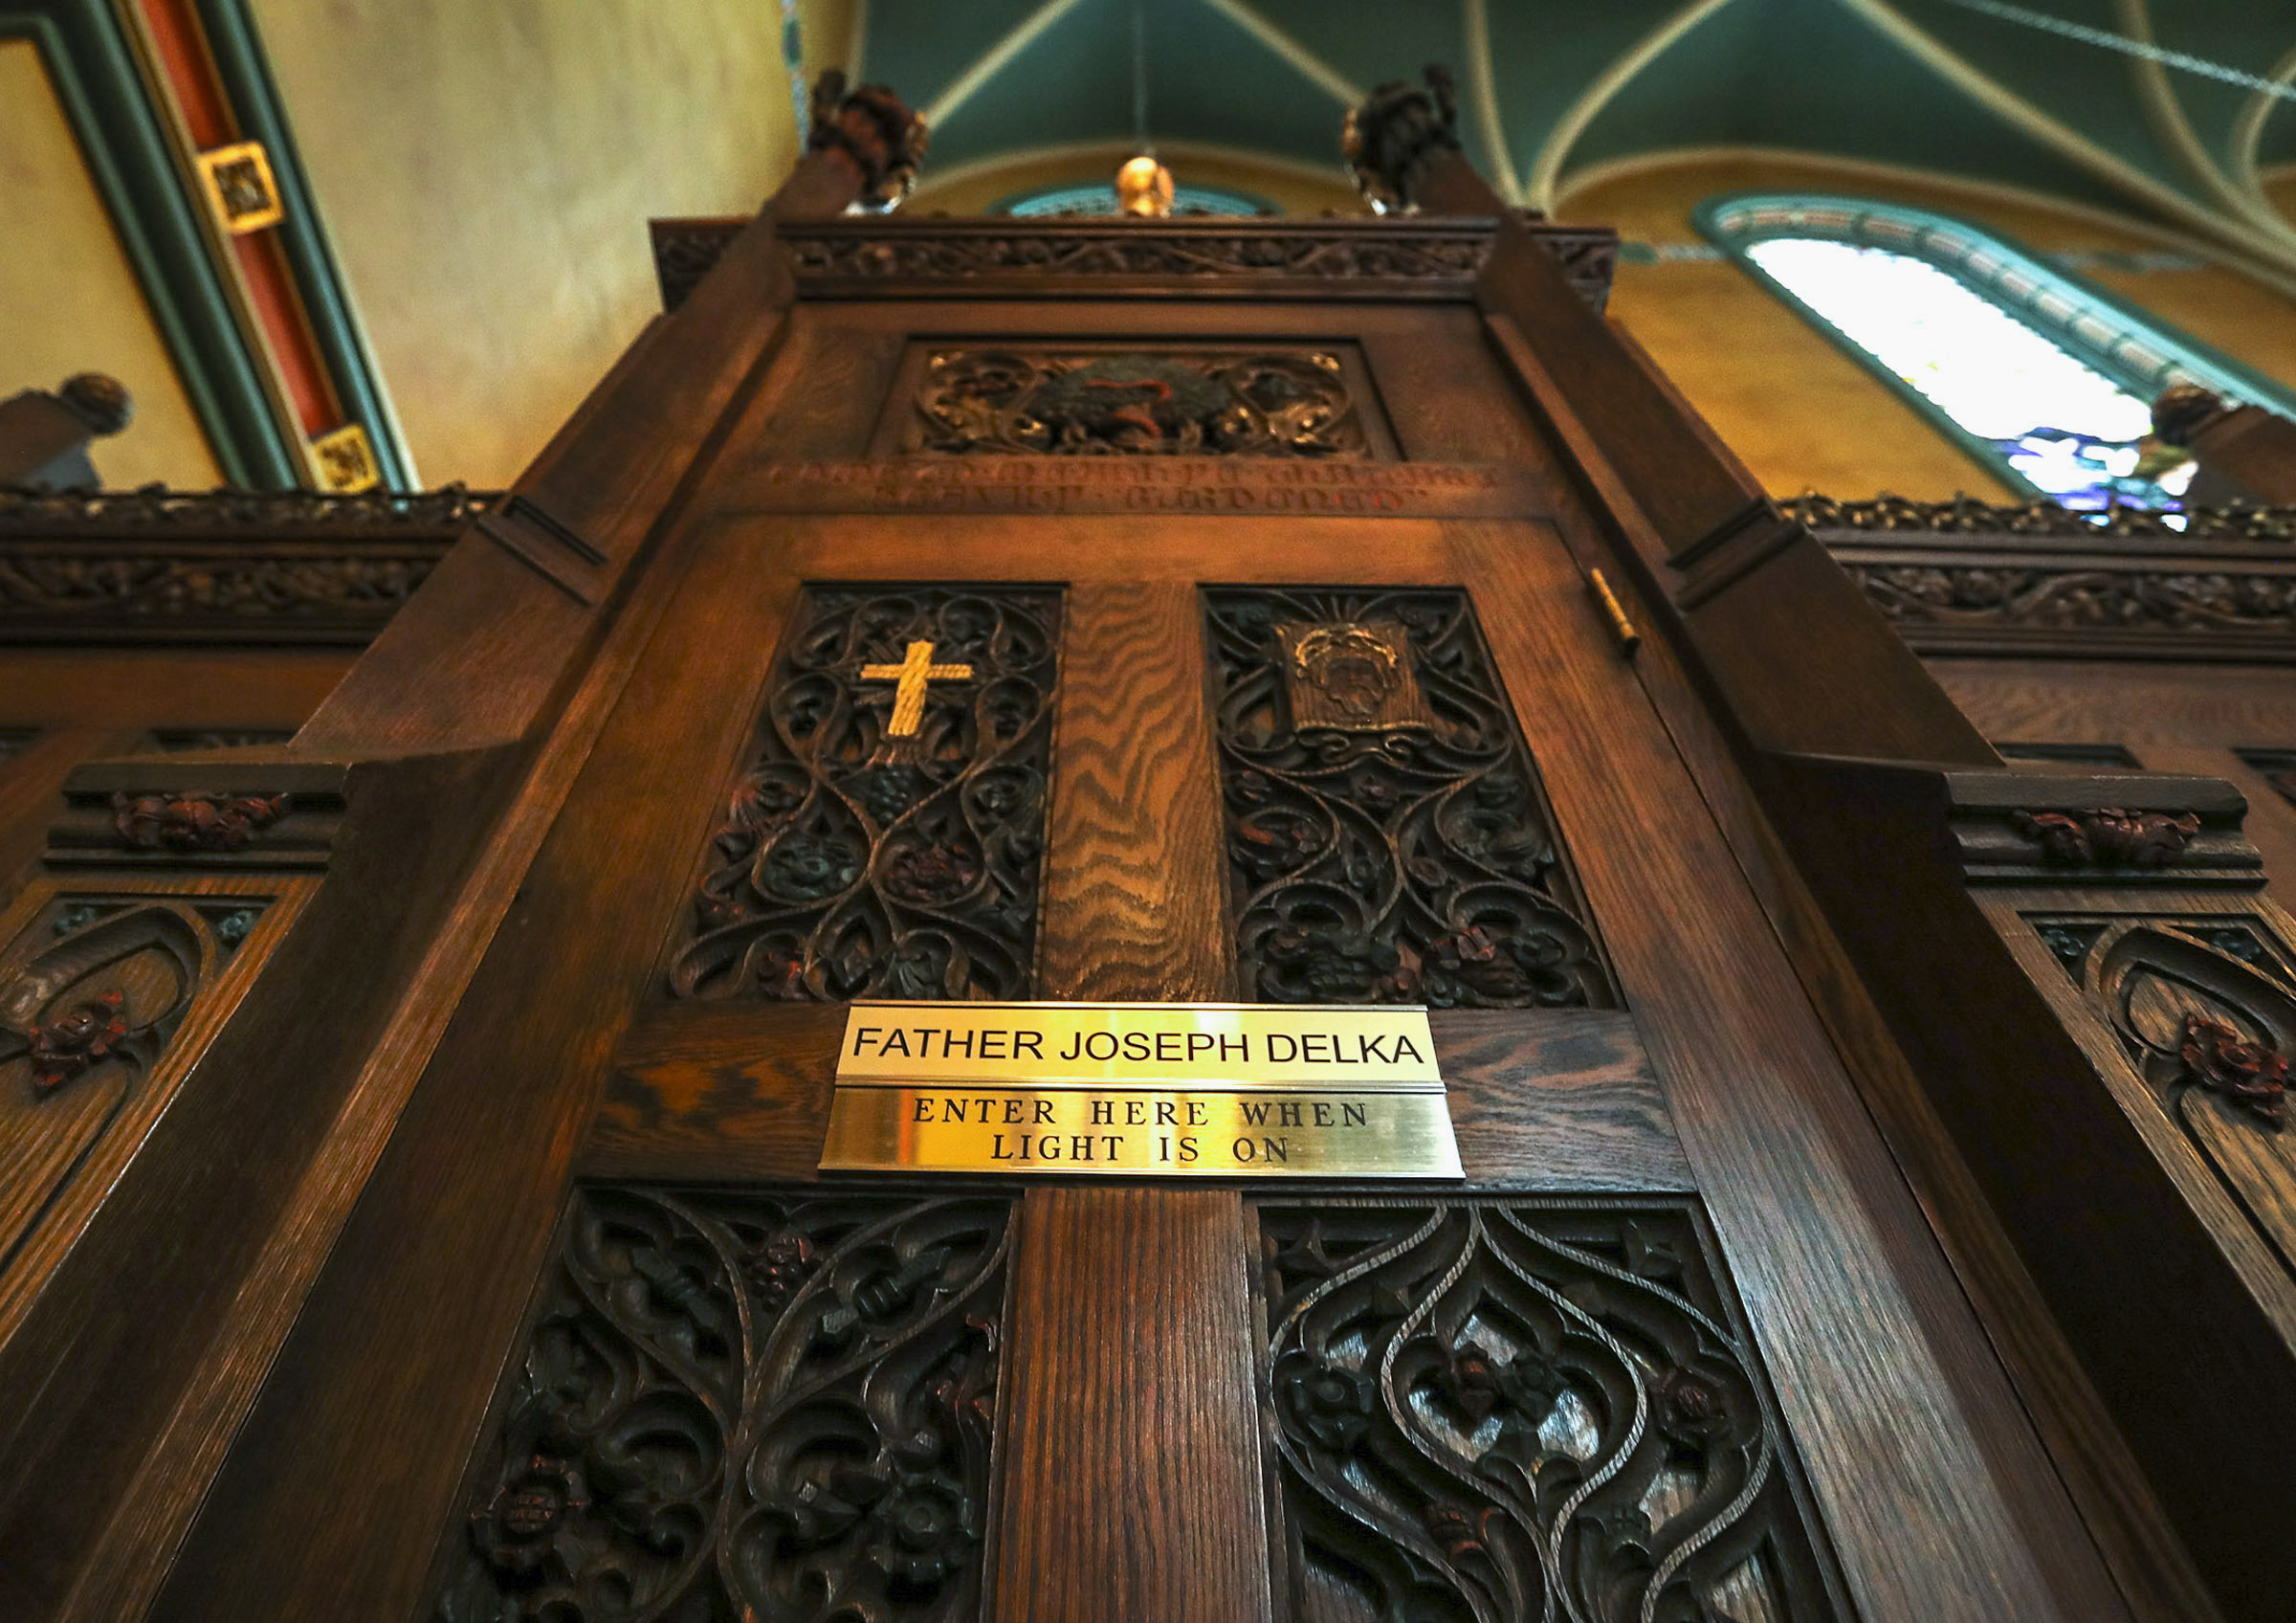 One of the two confessionals in the Cathedral of the Madeleine in Salt Lake City is pictured on Tuesday, Jan. 14, 2020.